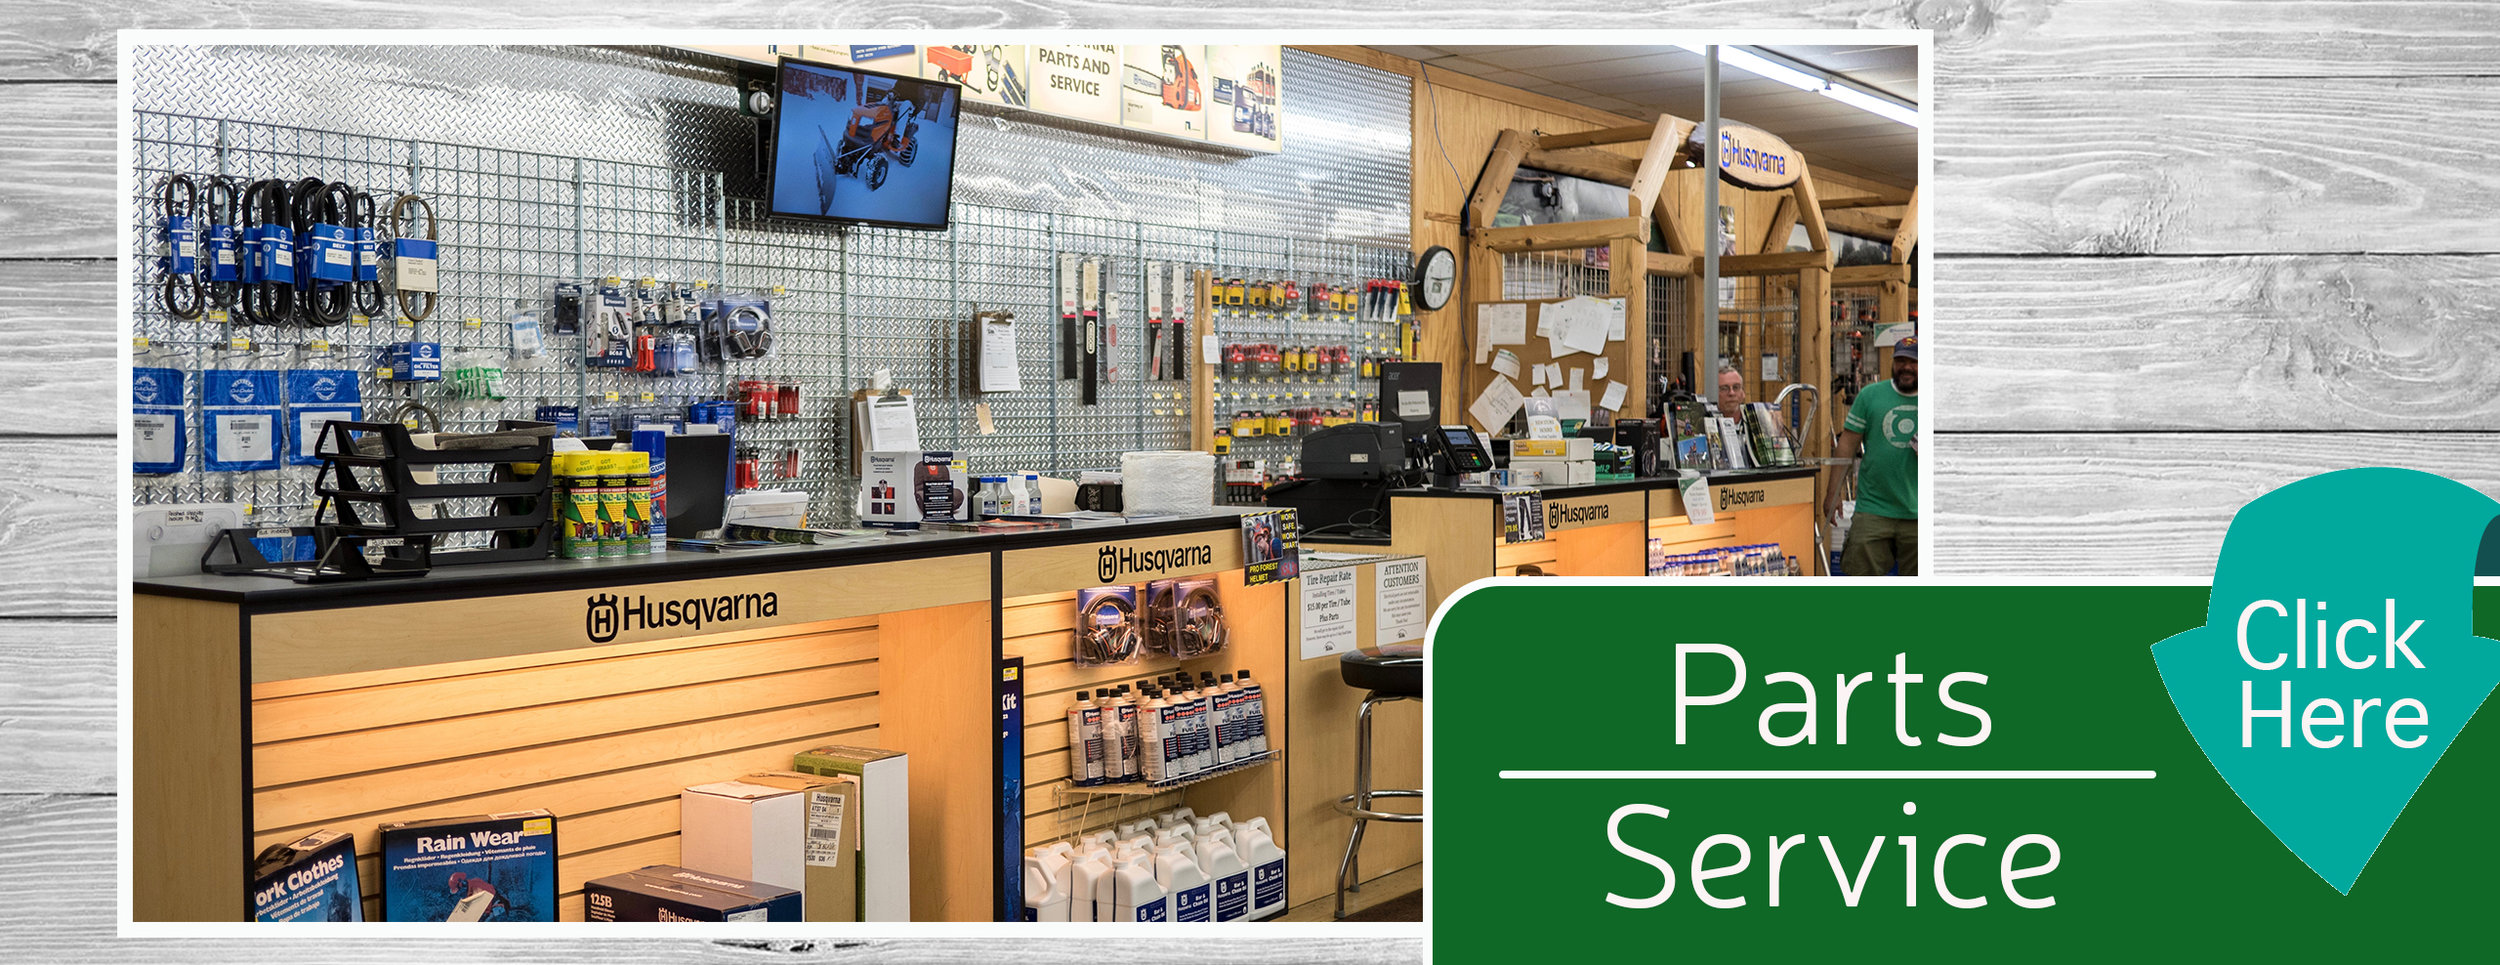 Parts & Service Home Page Banner